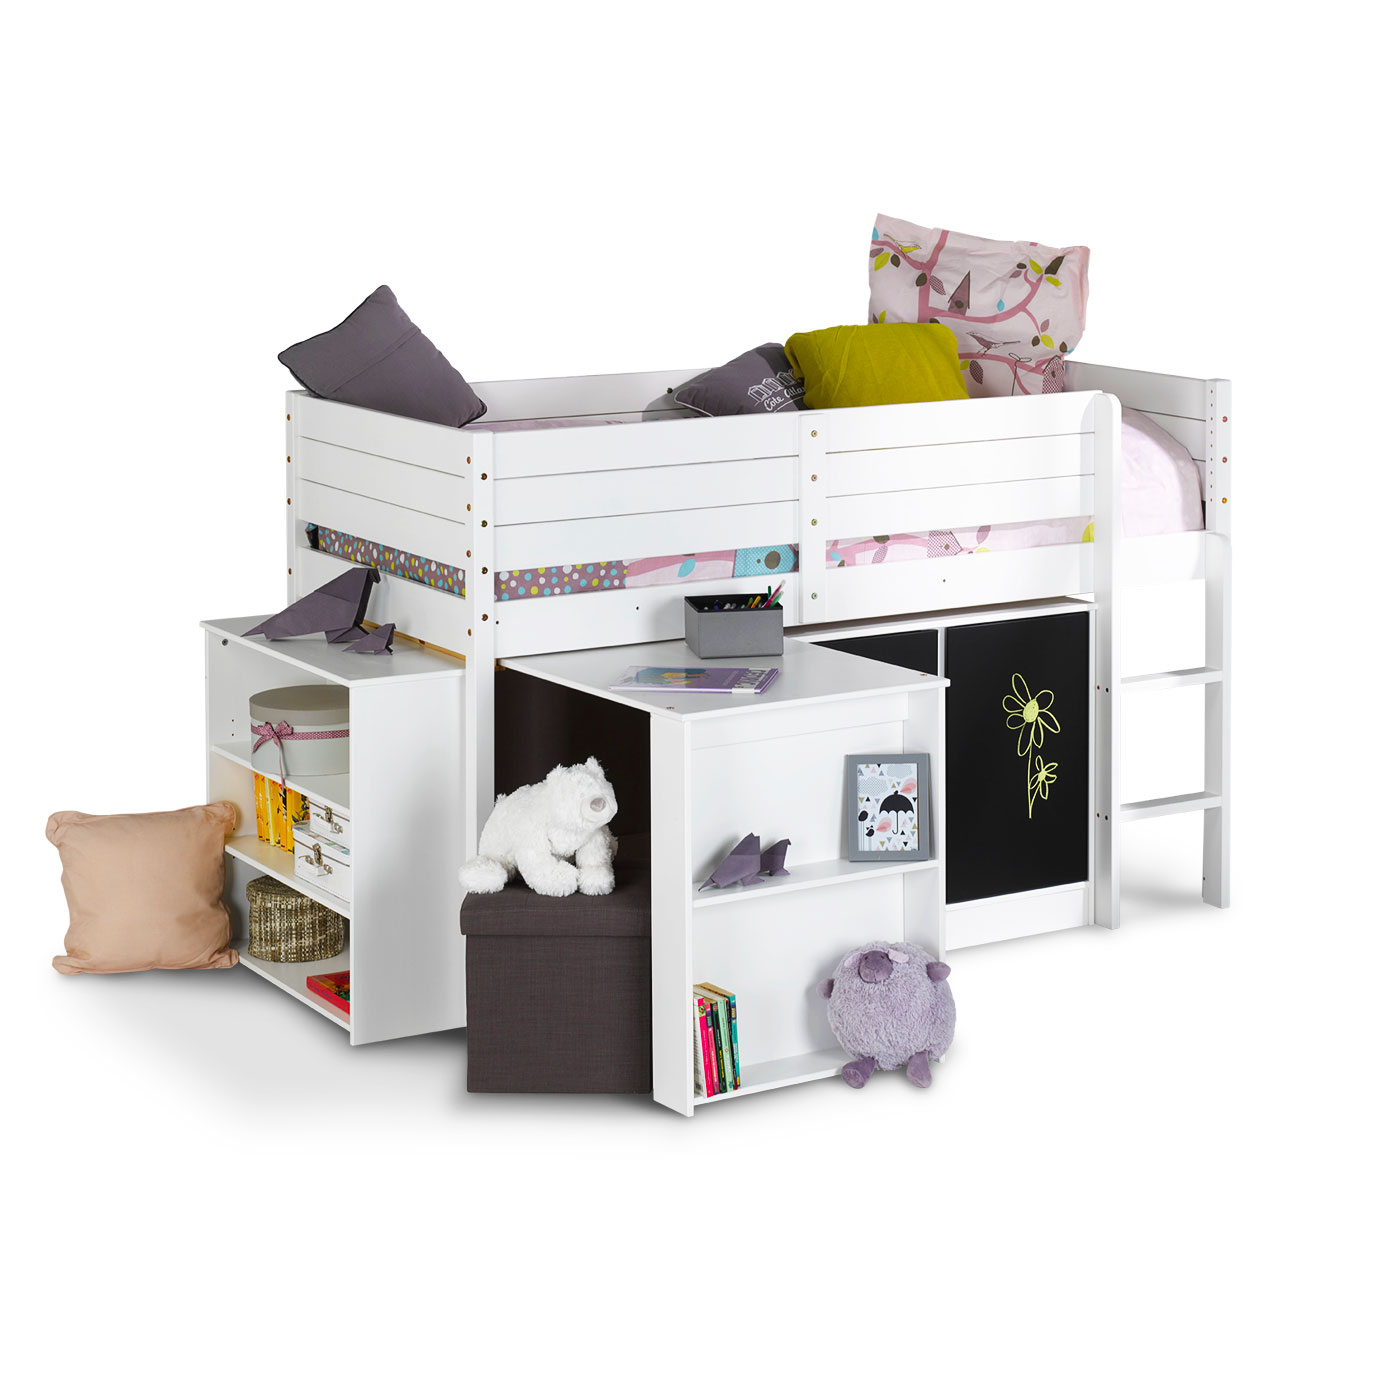 amenagement sous lit mi hauteur amazing bureau sous un lit mi hauteur coloris blanc rose with. Black Bedroom Furniture Sets. Home Design Ideas